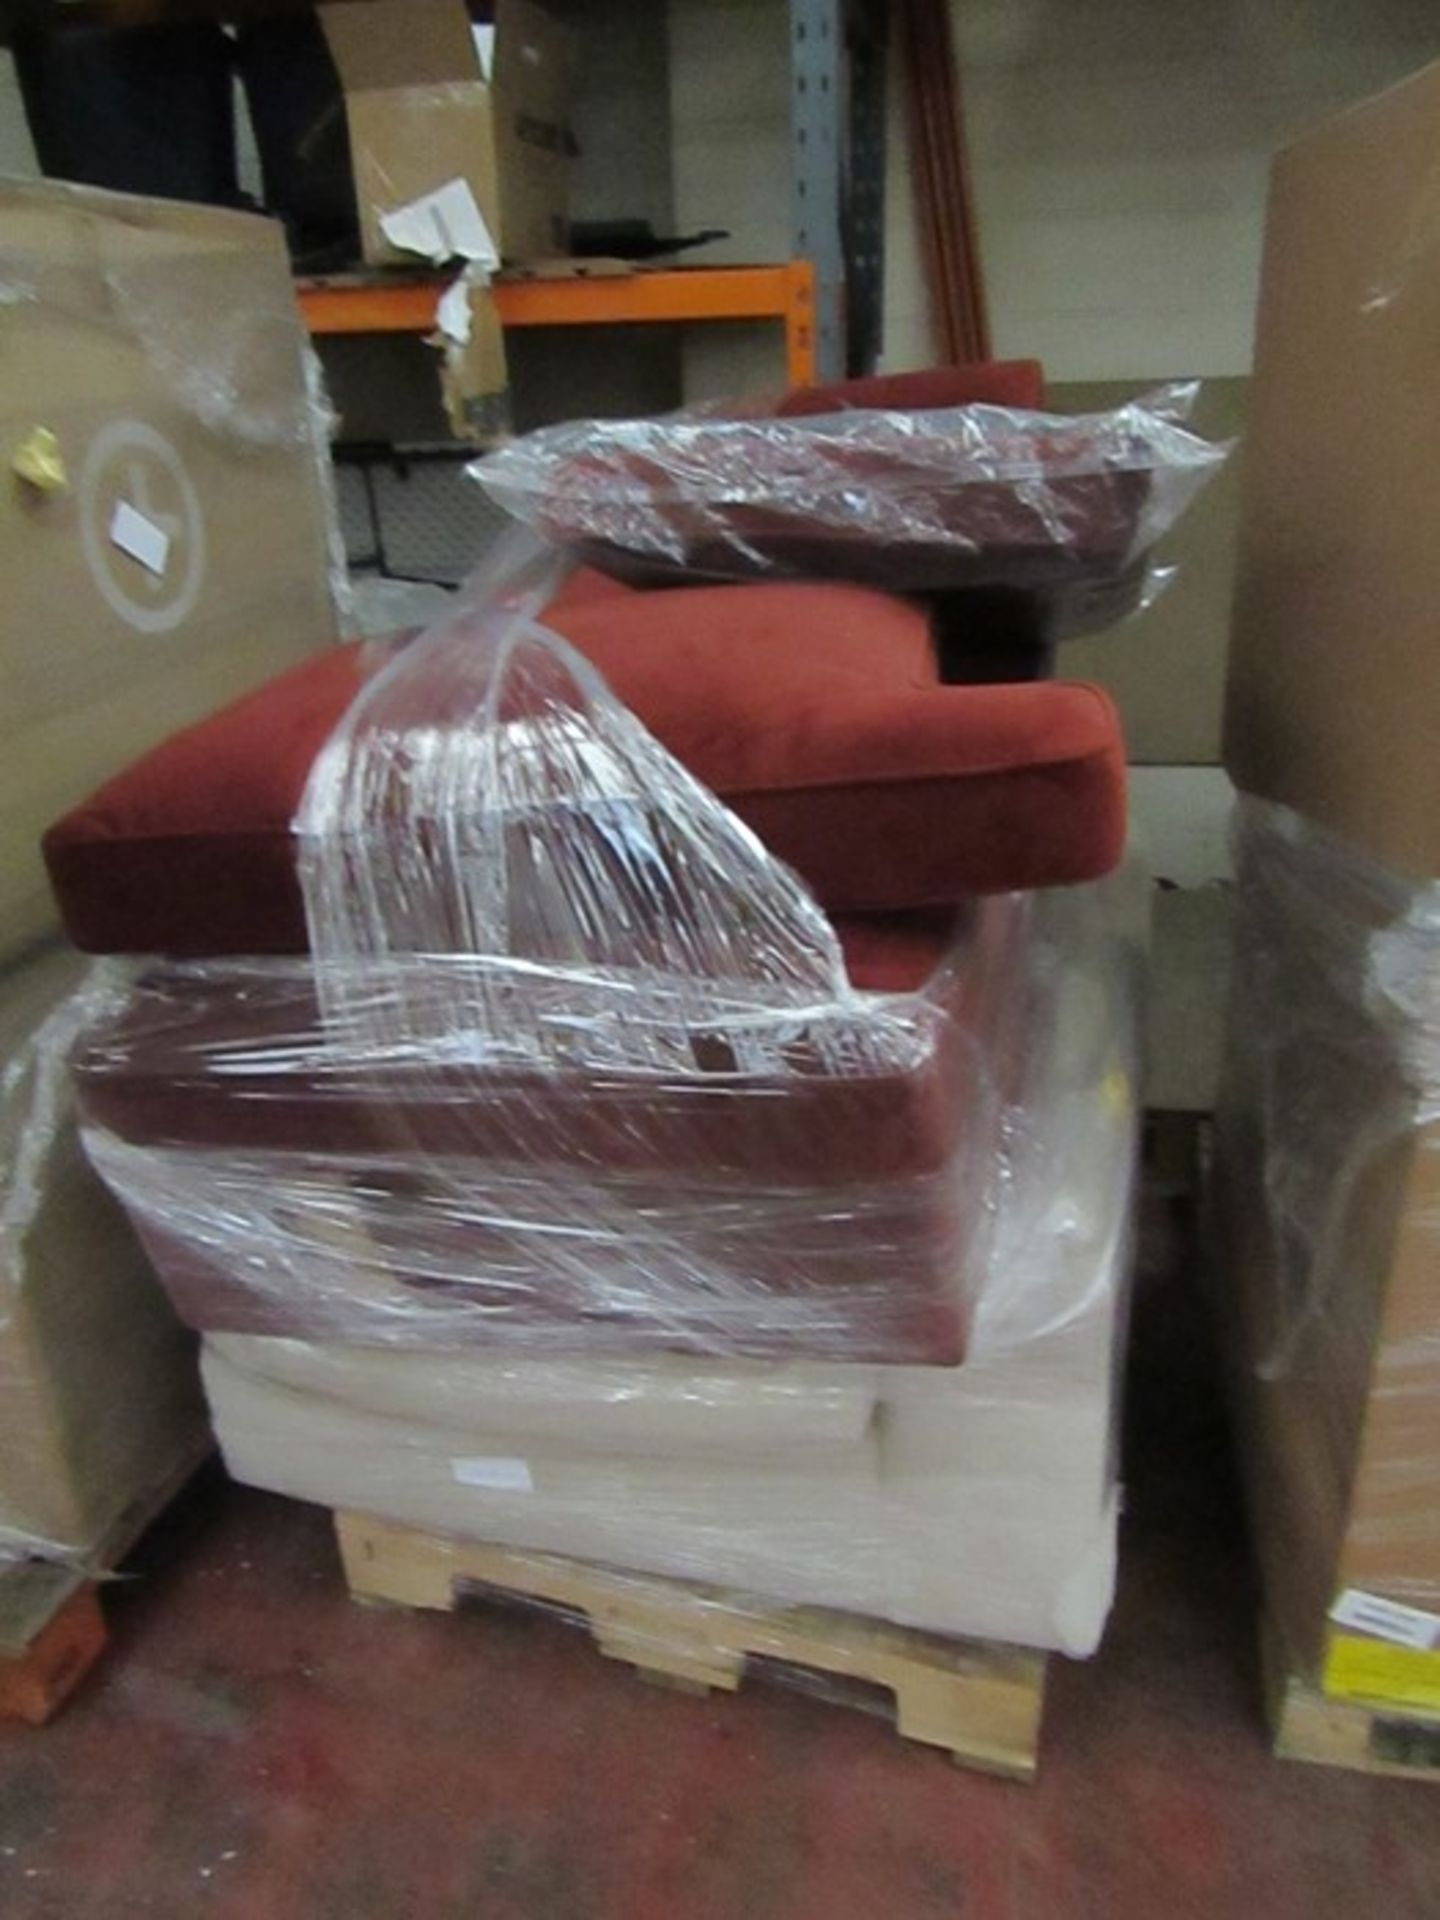   16x   PALLETS OF MADE.COM UNMANIFESTED SOFA PARTS, THESE ARE FROM VARIOUS SOFAS AND DONT APPEAR TO - Image 3 of 34